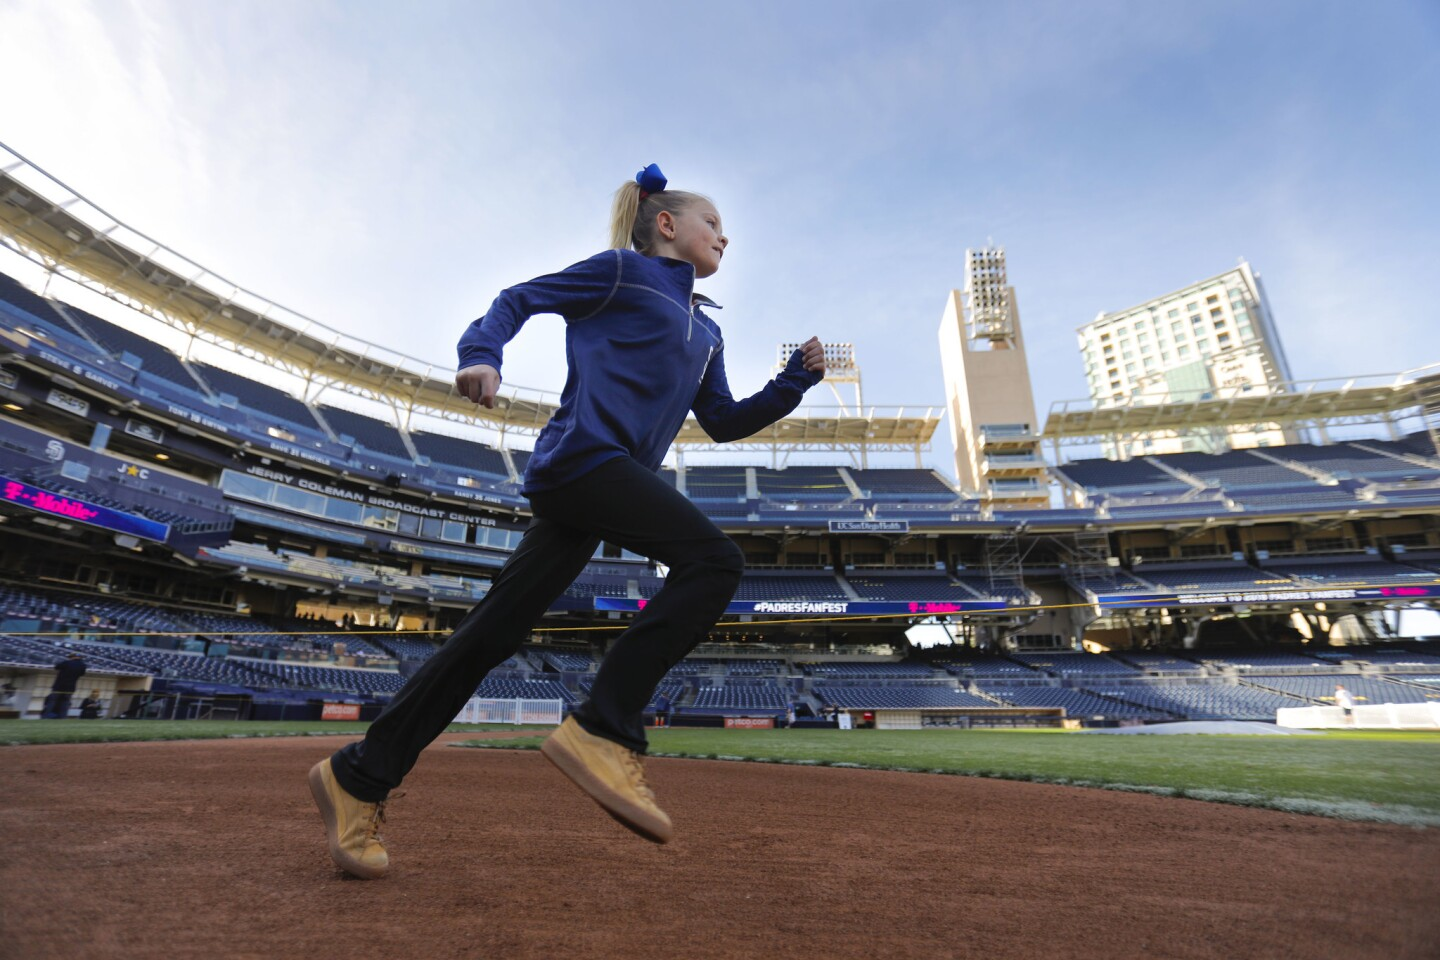 Nine-year-old Bailee Stevens of Fallbrook was one of the first to run the bases during the 2018 Padres FanFest at Petco Park.